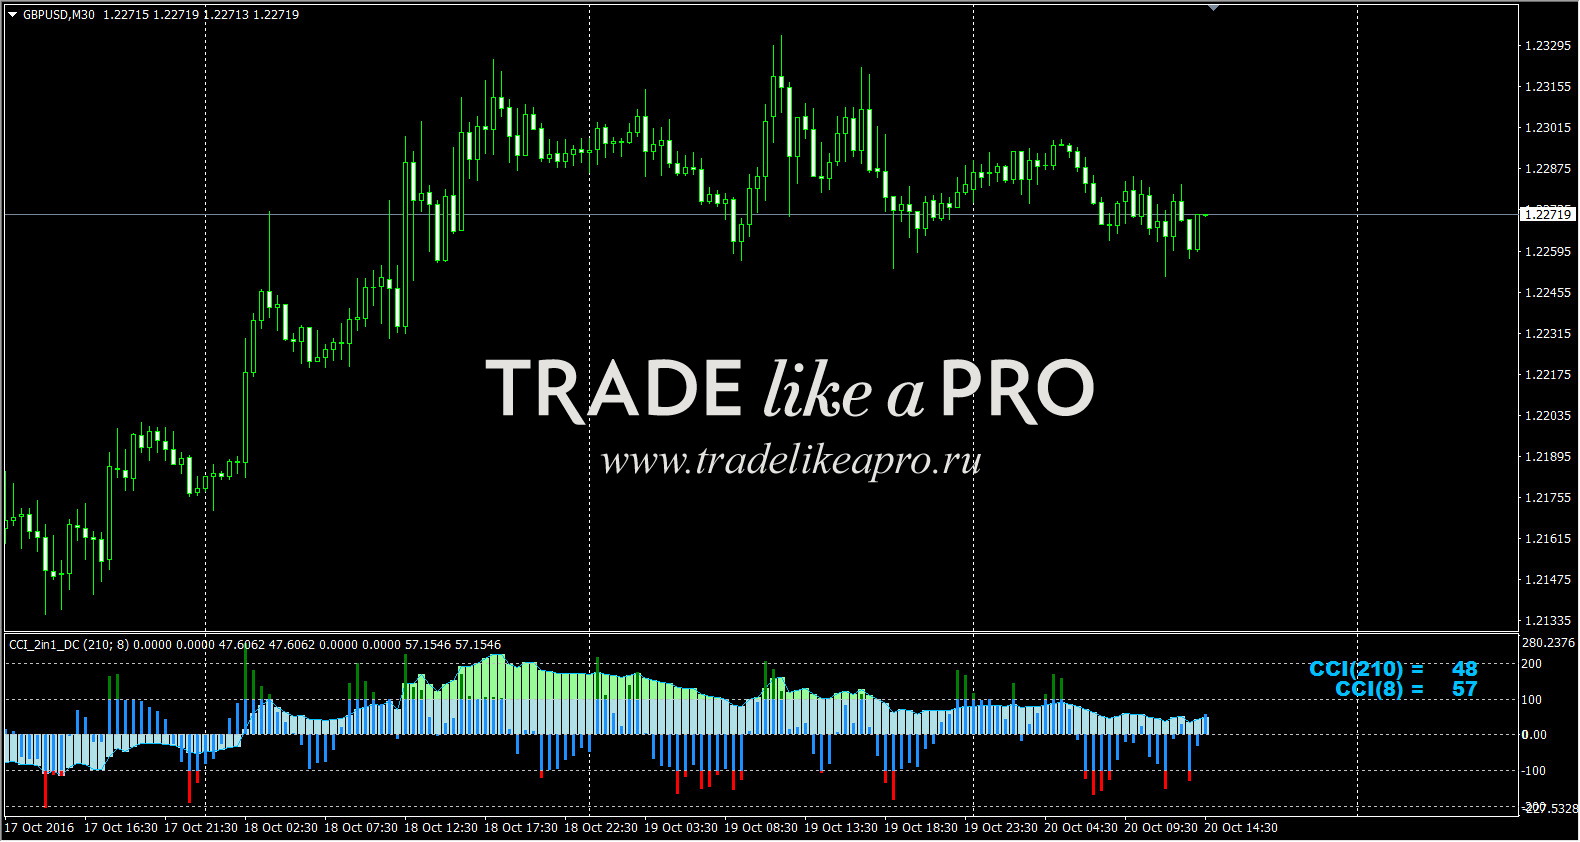 Cci woodie panel heart for binary options